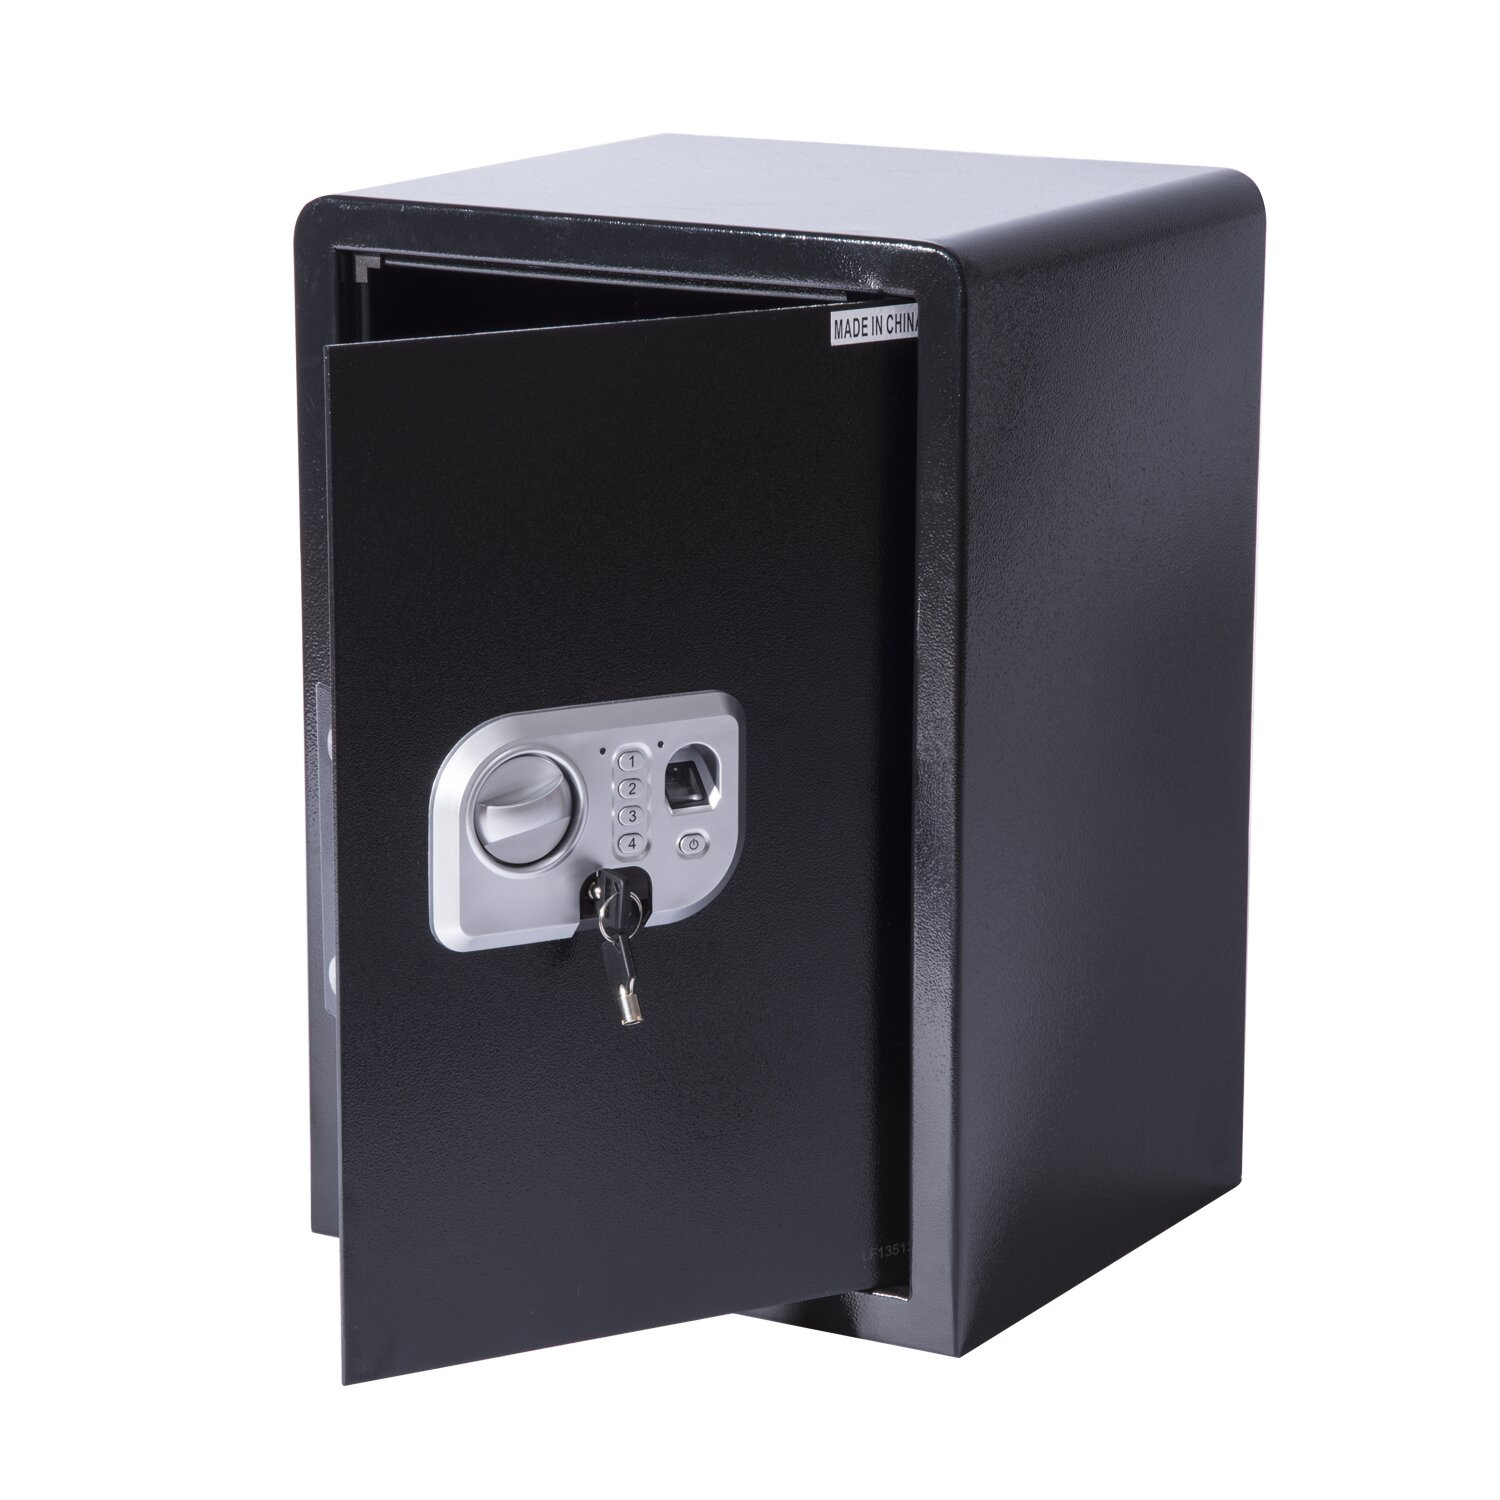 office max safe homcom homcom biometric lock home security safe amp reviews 23944